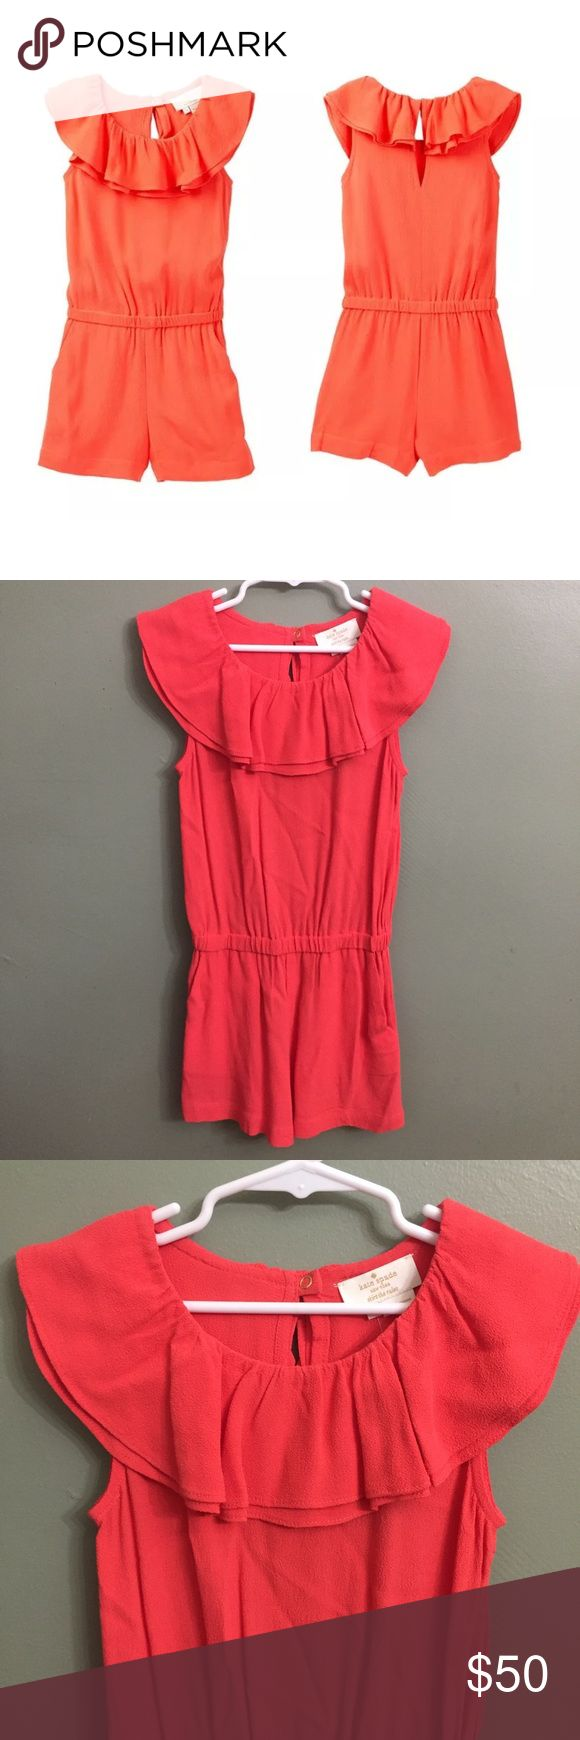 NWT Kate Spade Orange Avery Romper, 7 Kate Spade 100% AUTHENTIC NEW with tags attached White strappy sandals and sunnies can complete this look for your tiny fashionista. - Double ruffle scoop neck - Sleeveless - Back keyhole with snap closure - Elasticized waist - Dual front side pockets - Crepe texture kate spade Shirts & Tops